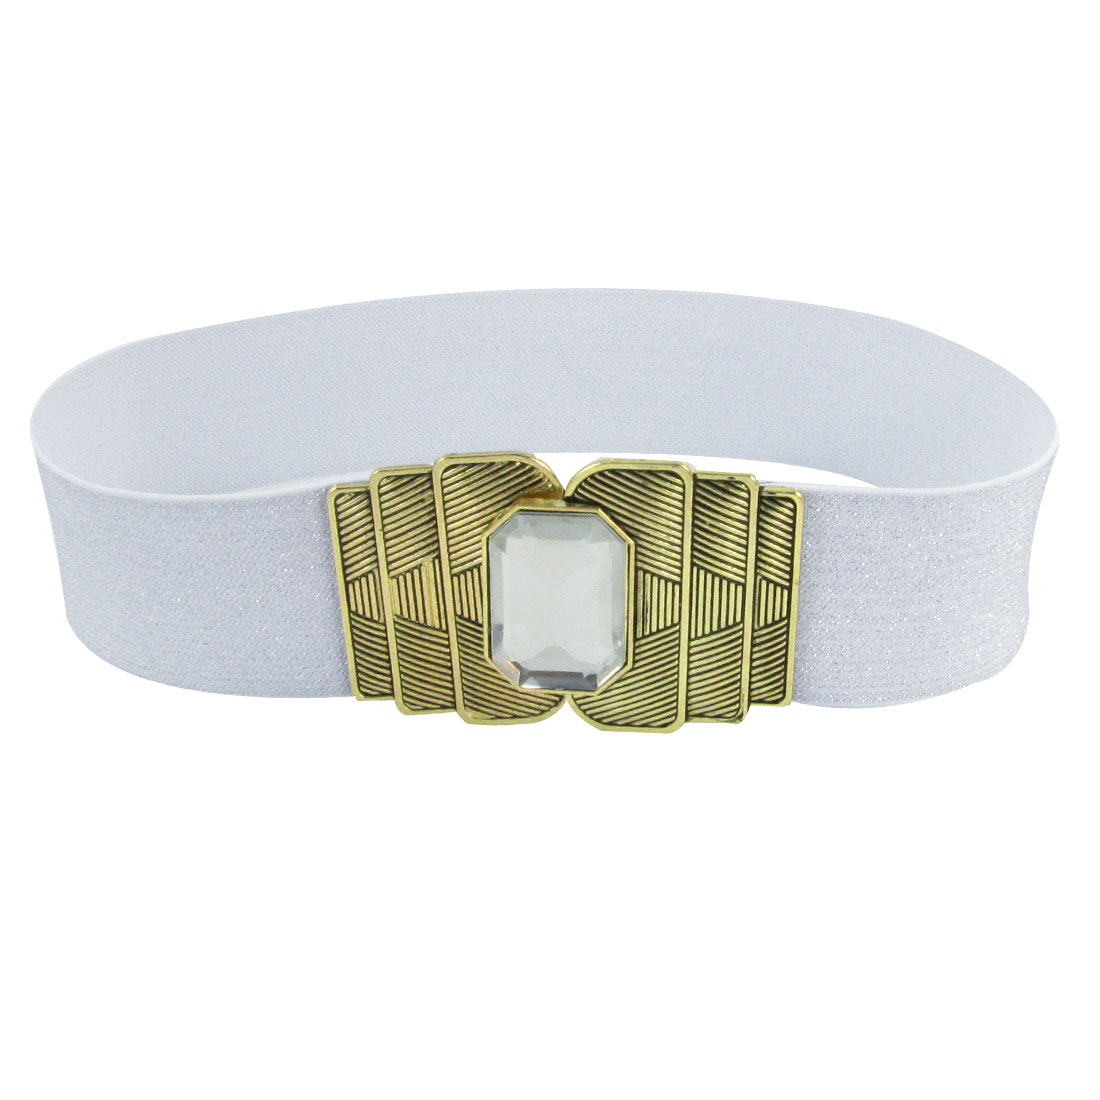 Plastic Crystal Decor Interlock Buckle 5cm Wide Elastic Cinch Belt Silver Tone